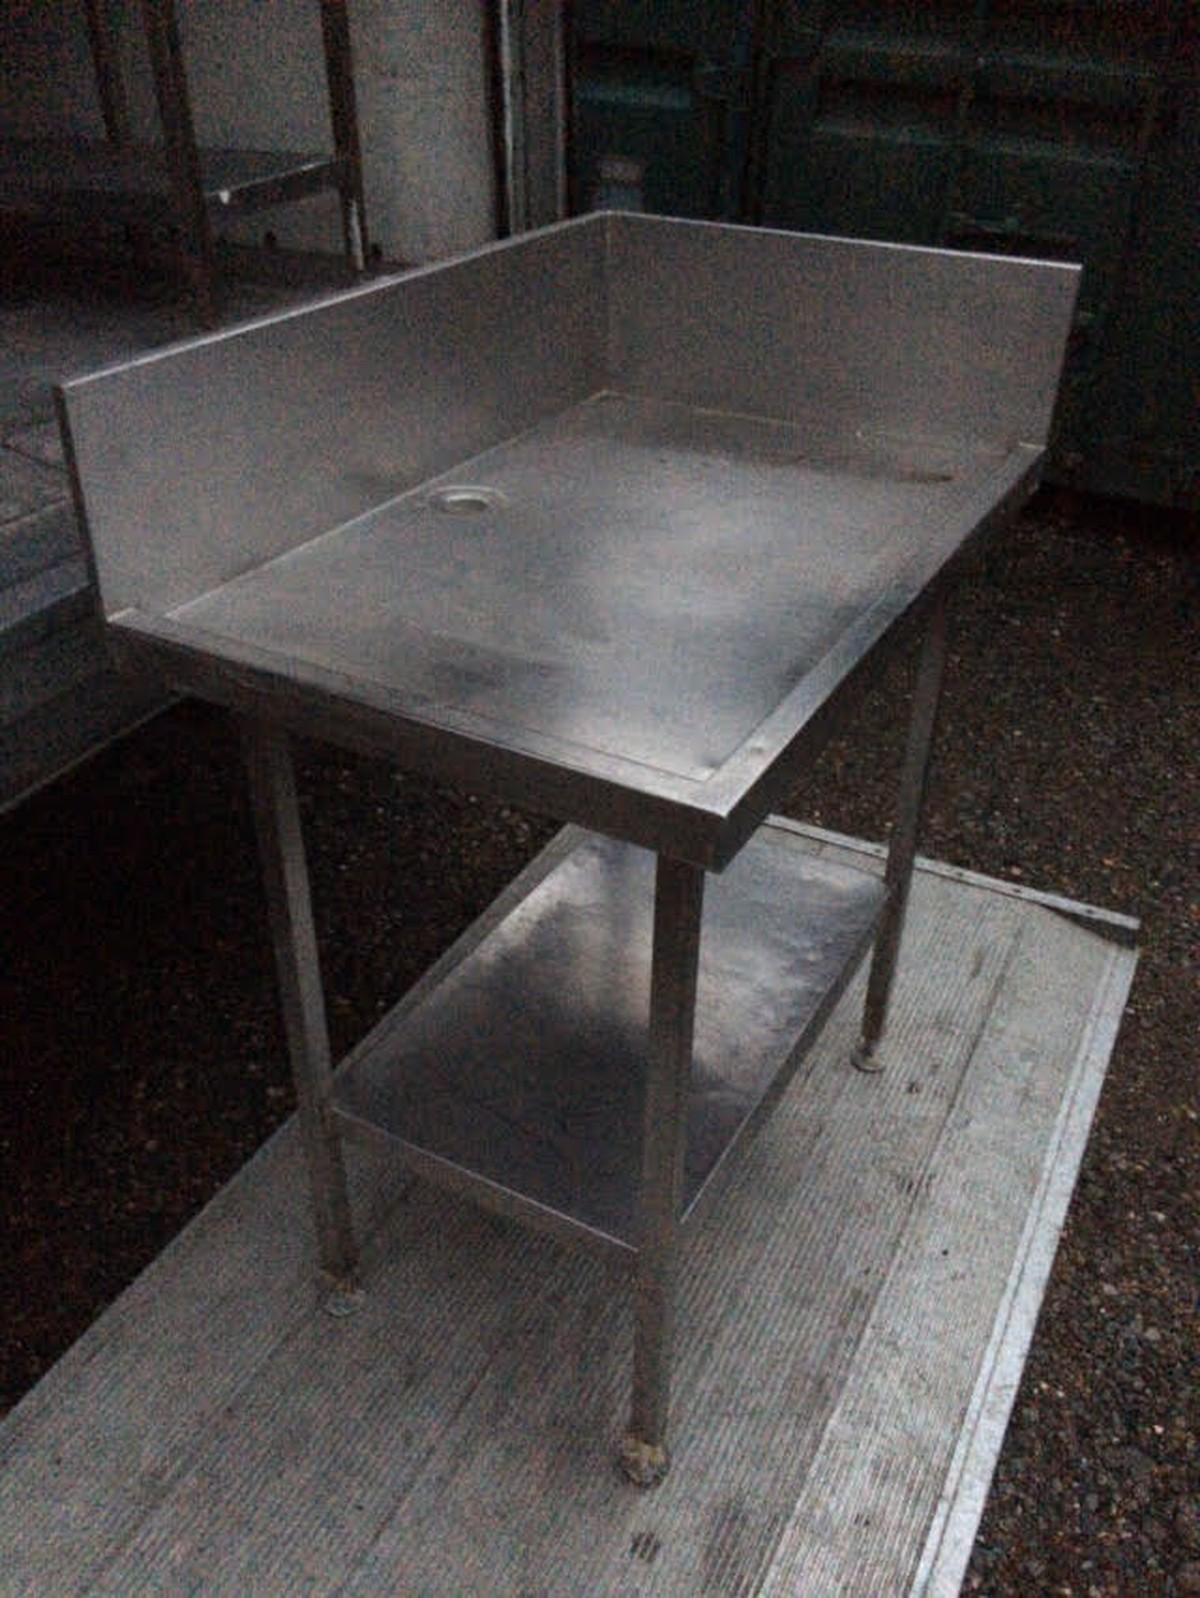 Secondhand Catering Equipment Stainless Steel Tables M - Tall stainless steel table